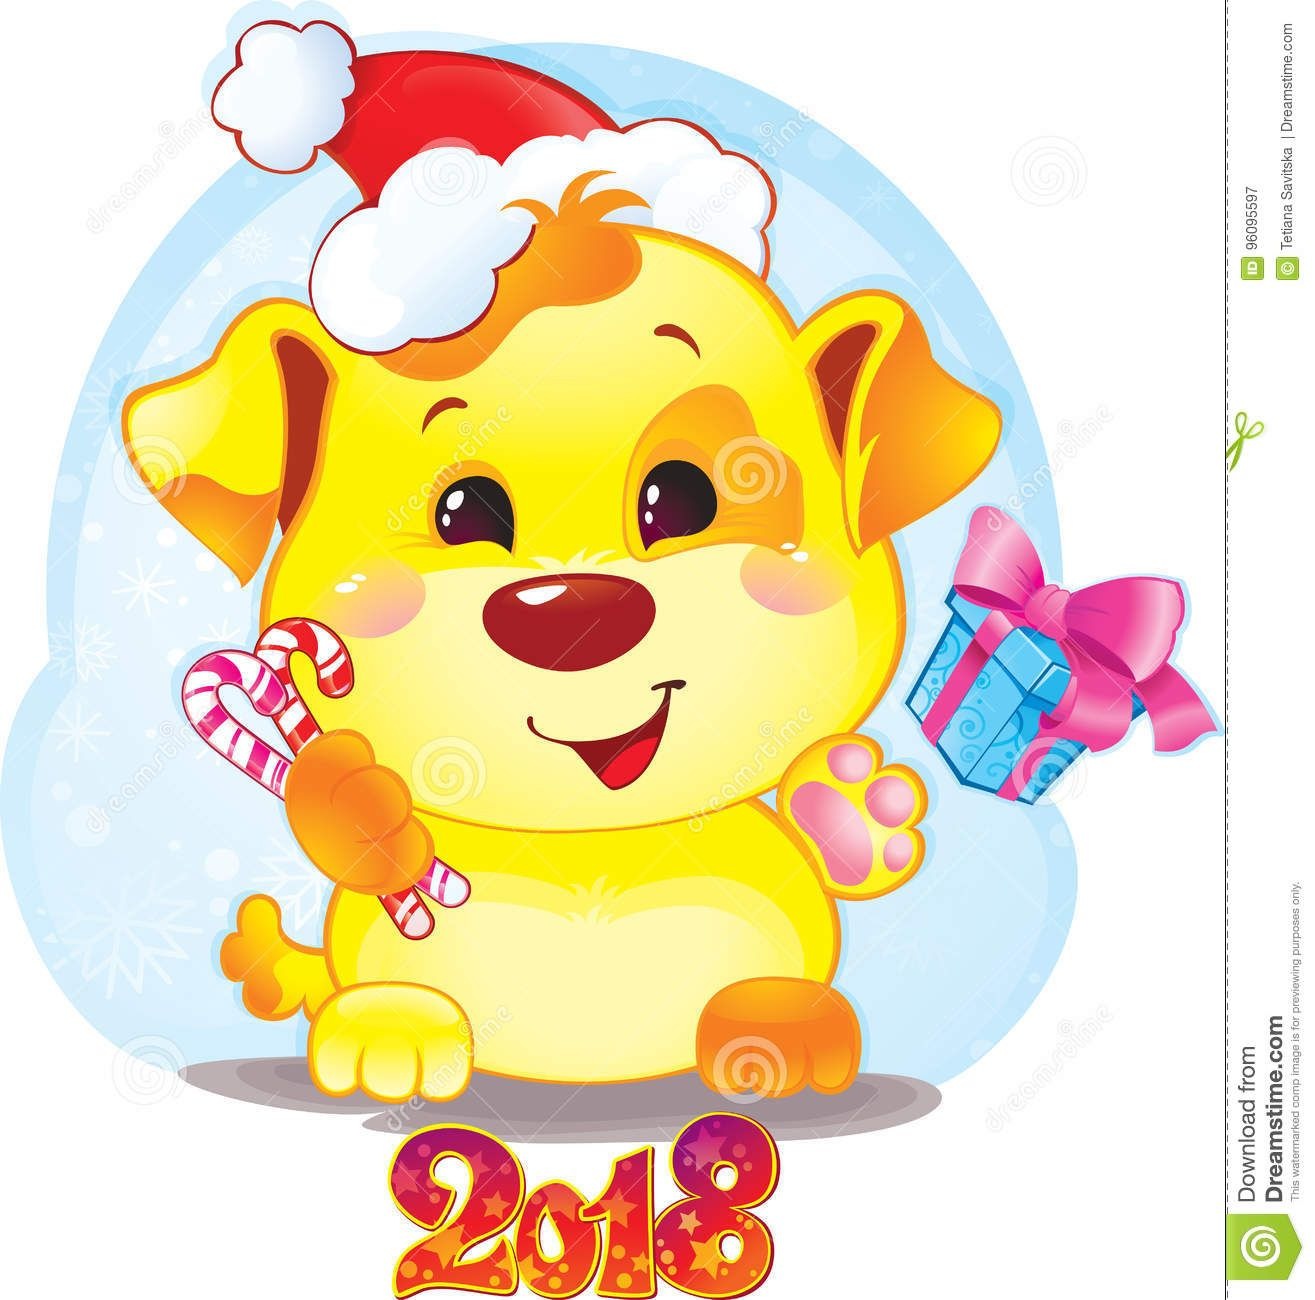 risultati immagini per new year 2018 images cartoon